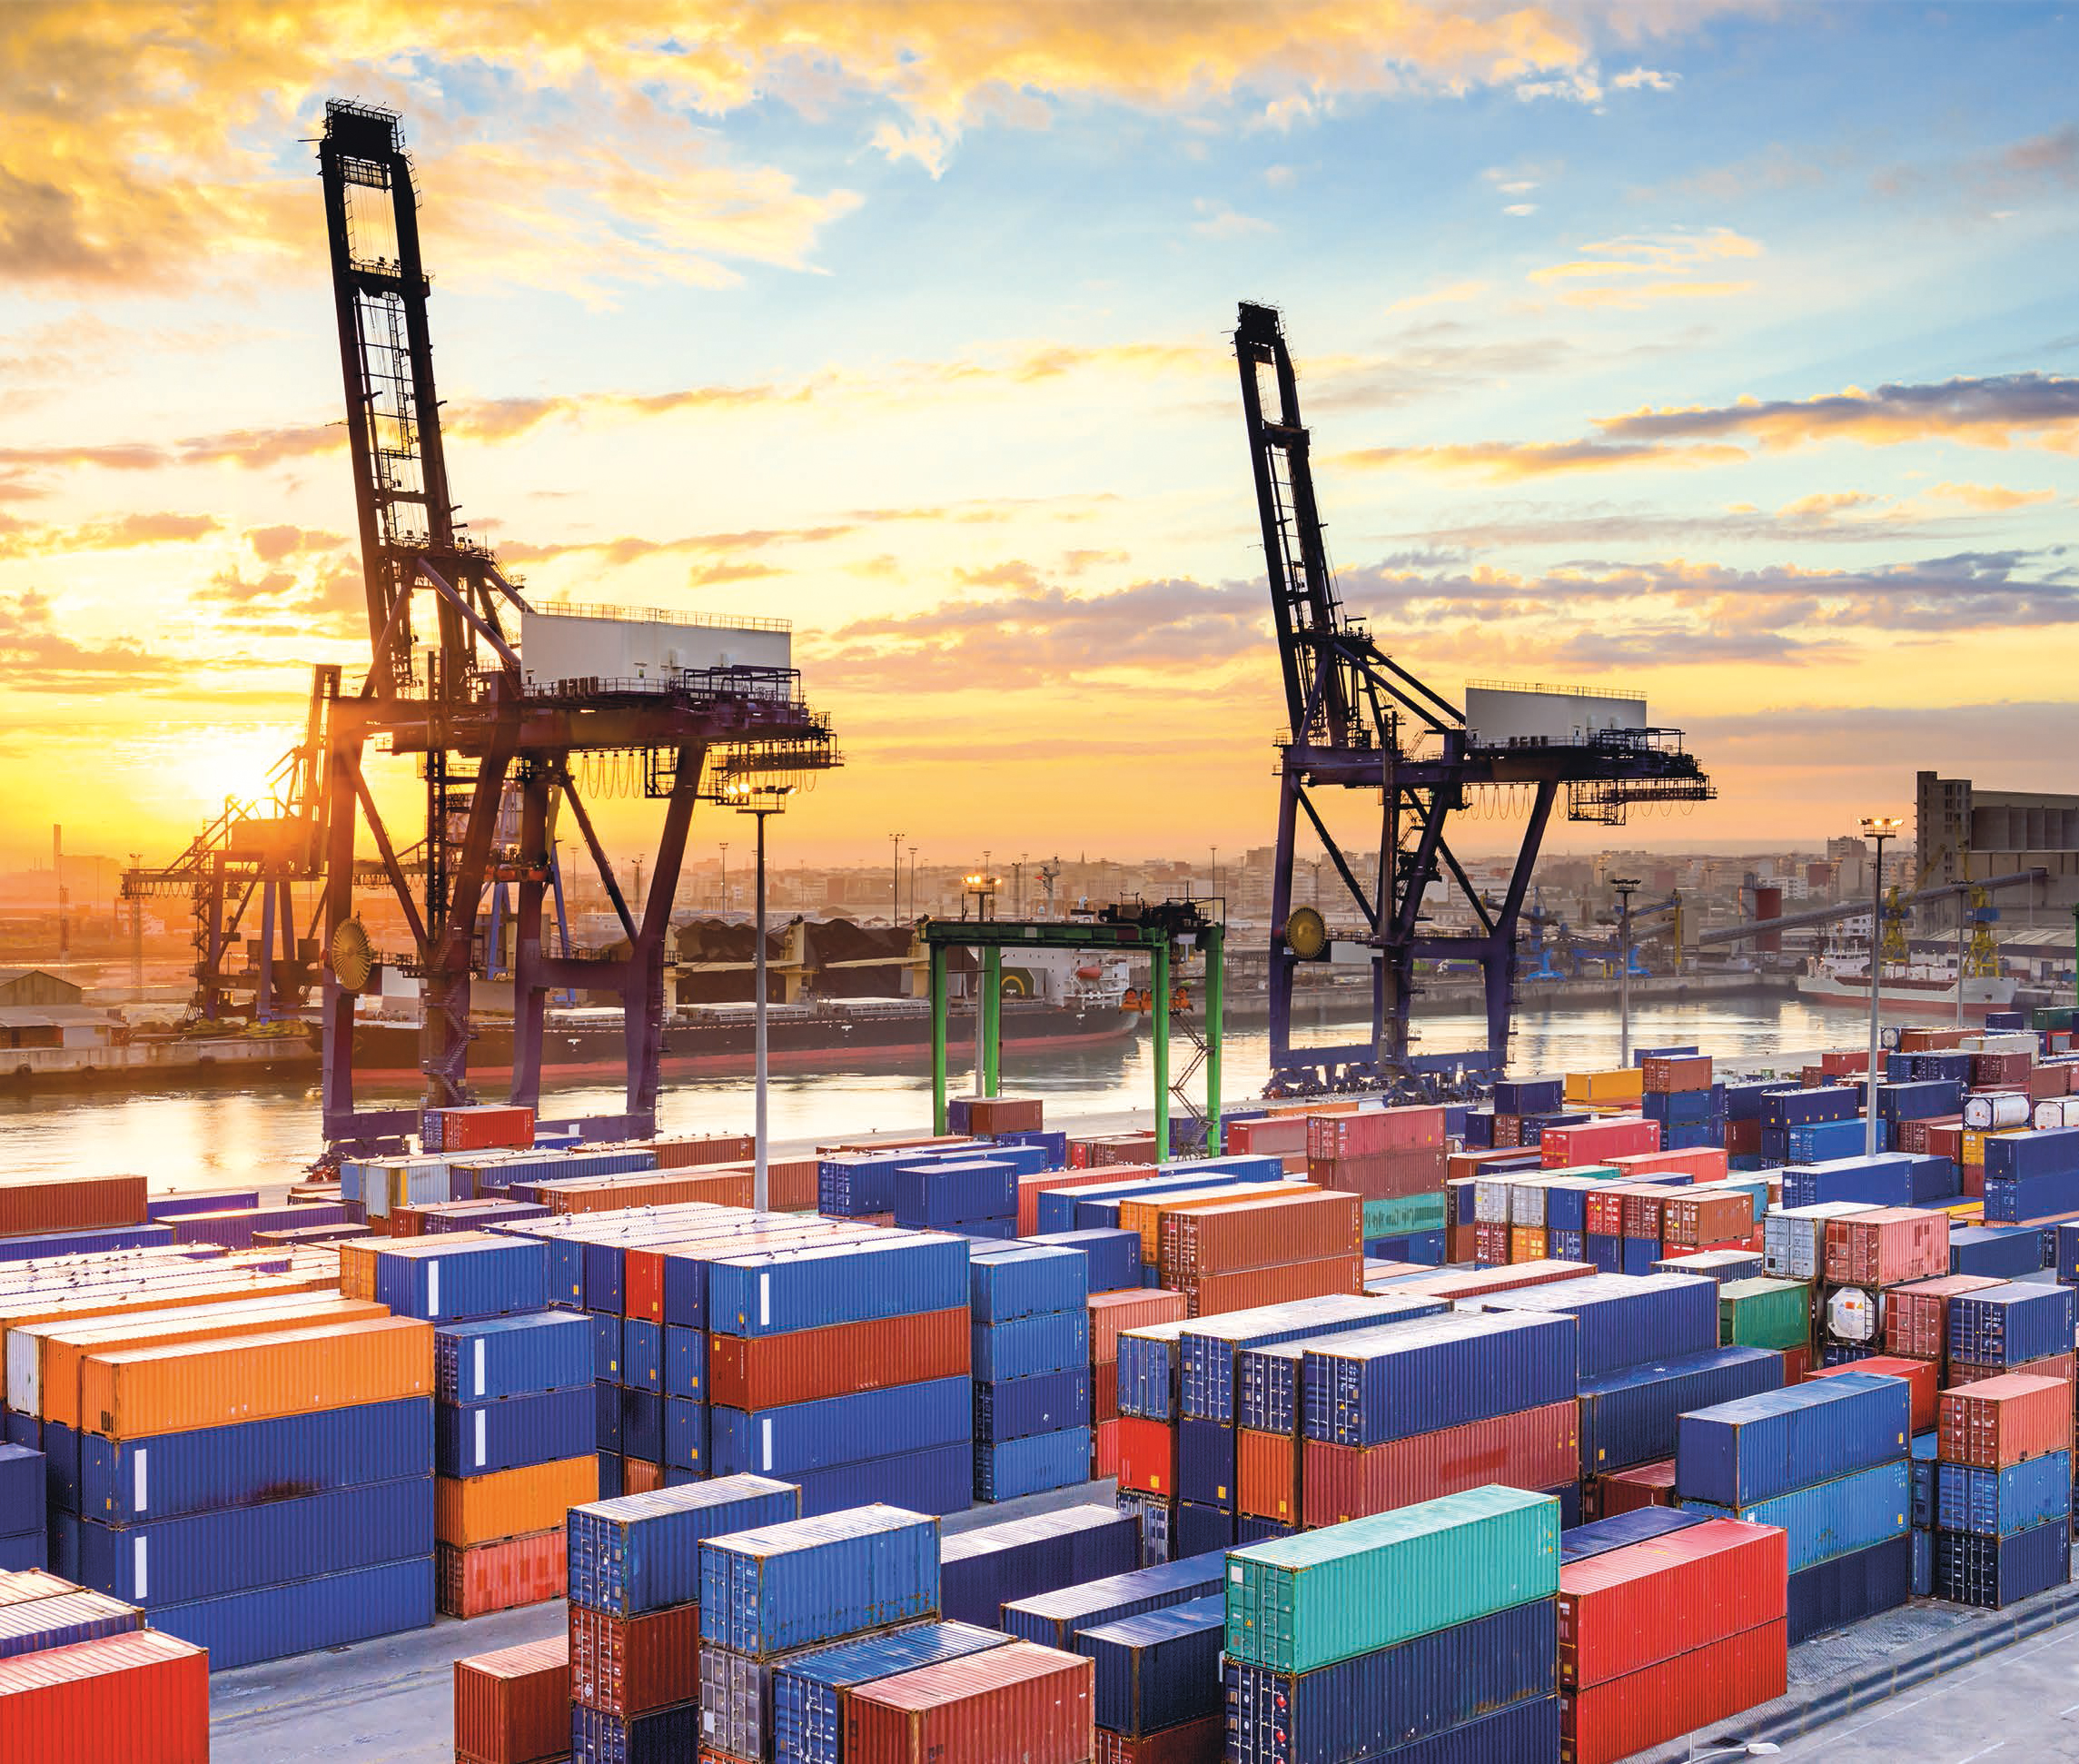 uk logistics industry essay Essays - largest database of quality sample essays and research papers on pest analysis on logistics industry.